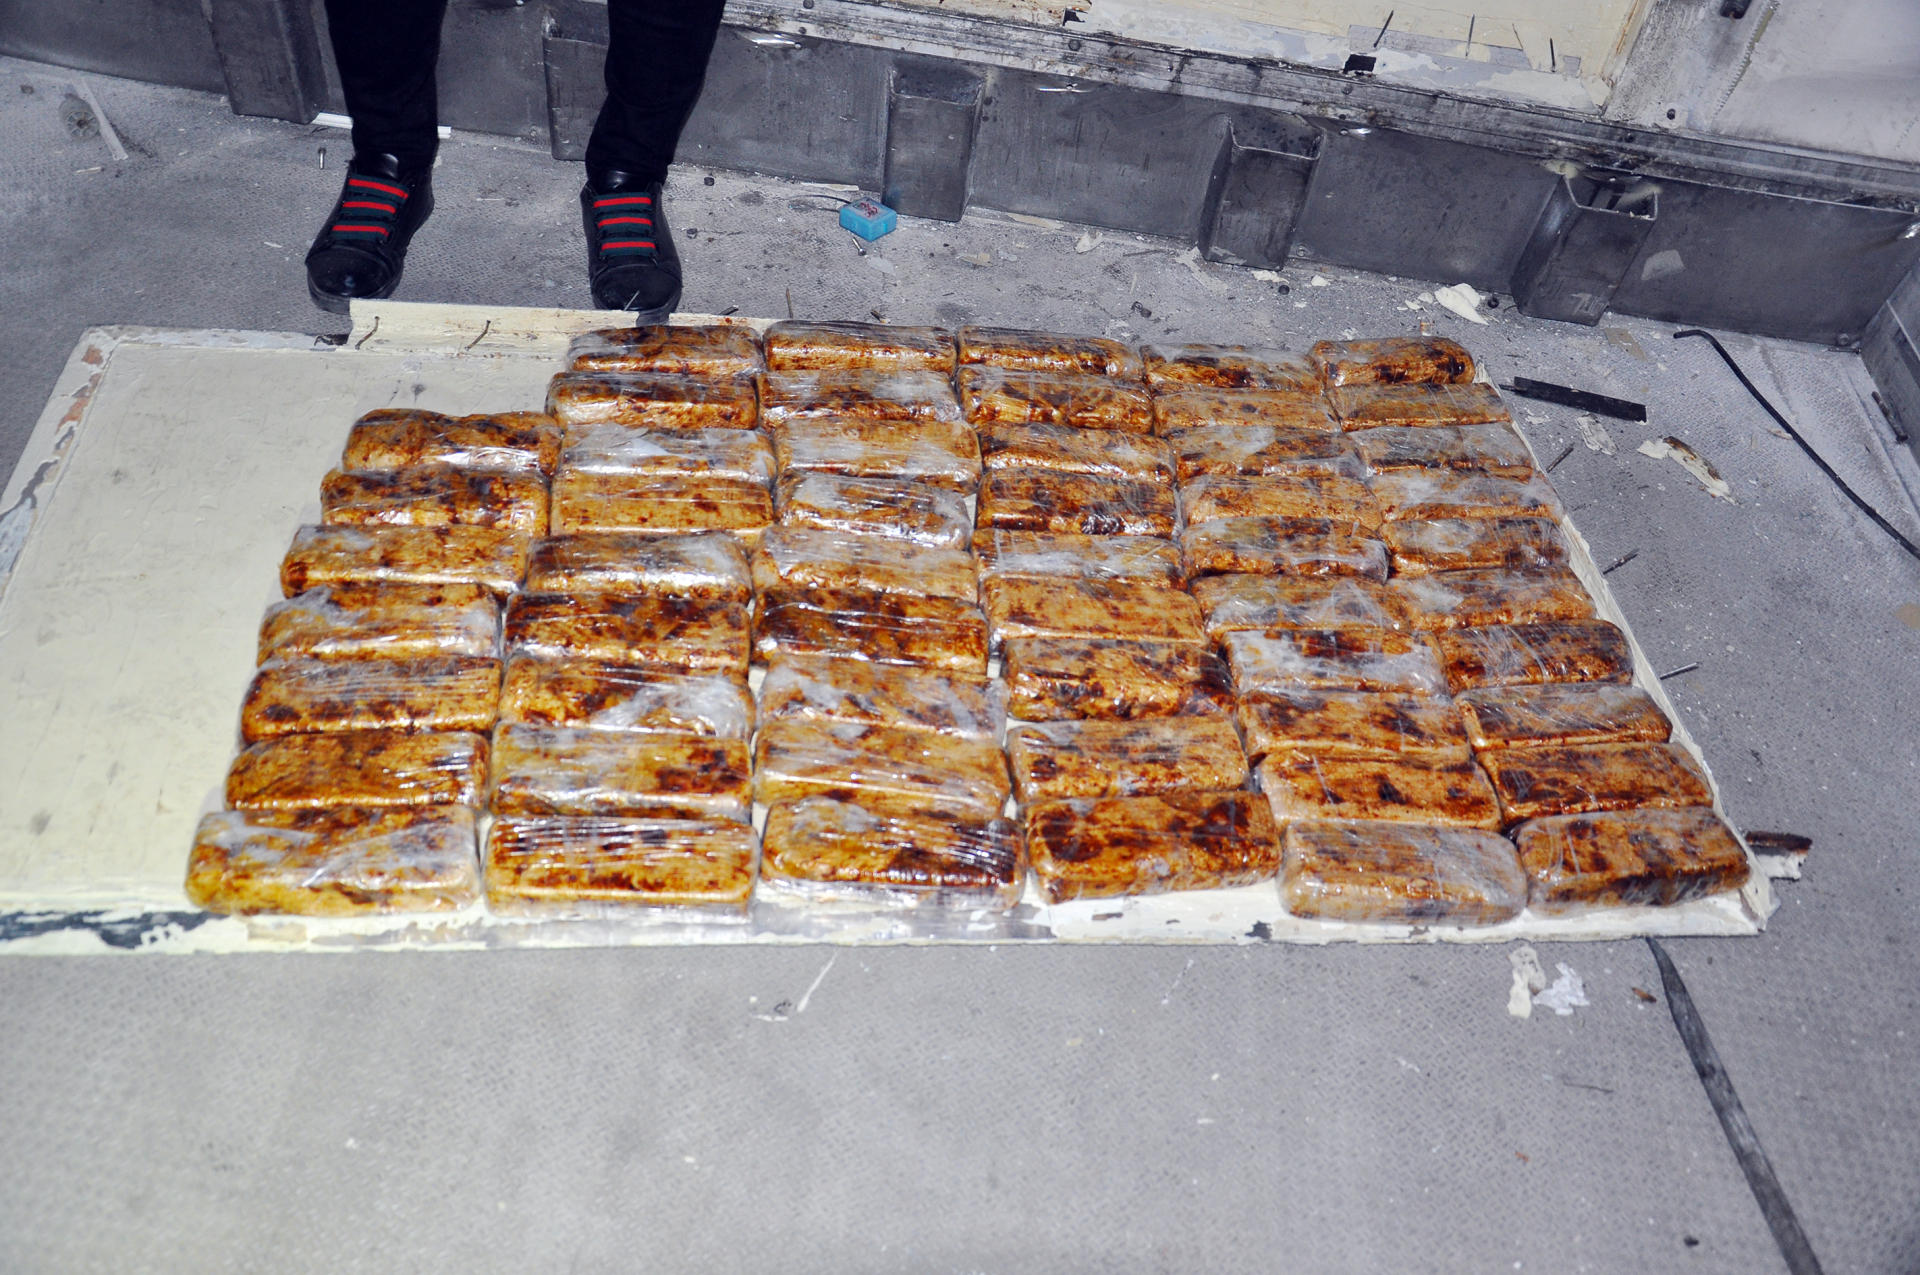 Ukraine citizen caught in Azerbaijan, while smuggling heroin from Iran (PHOTO/VIDEO)